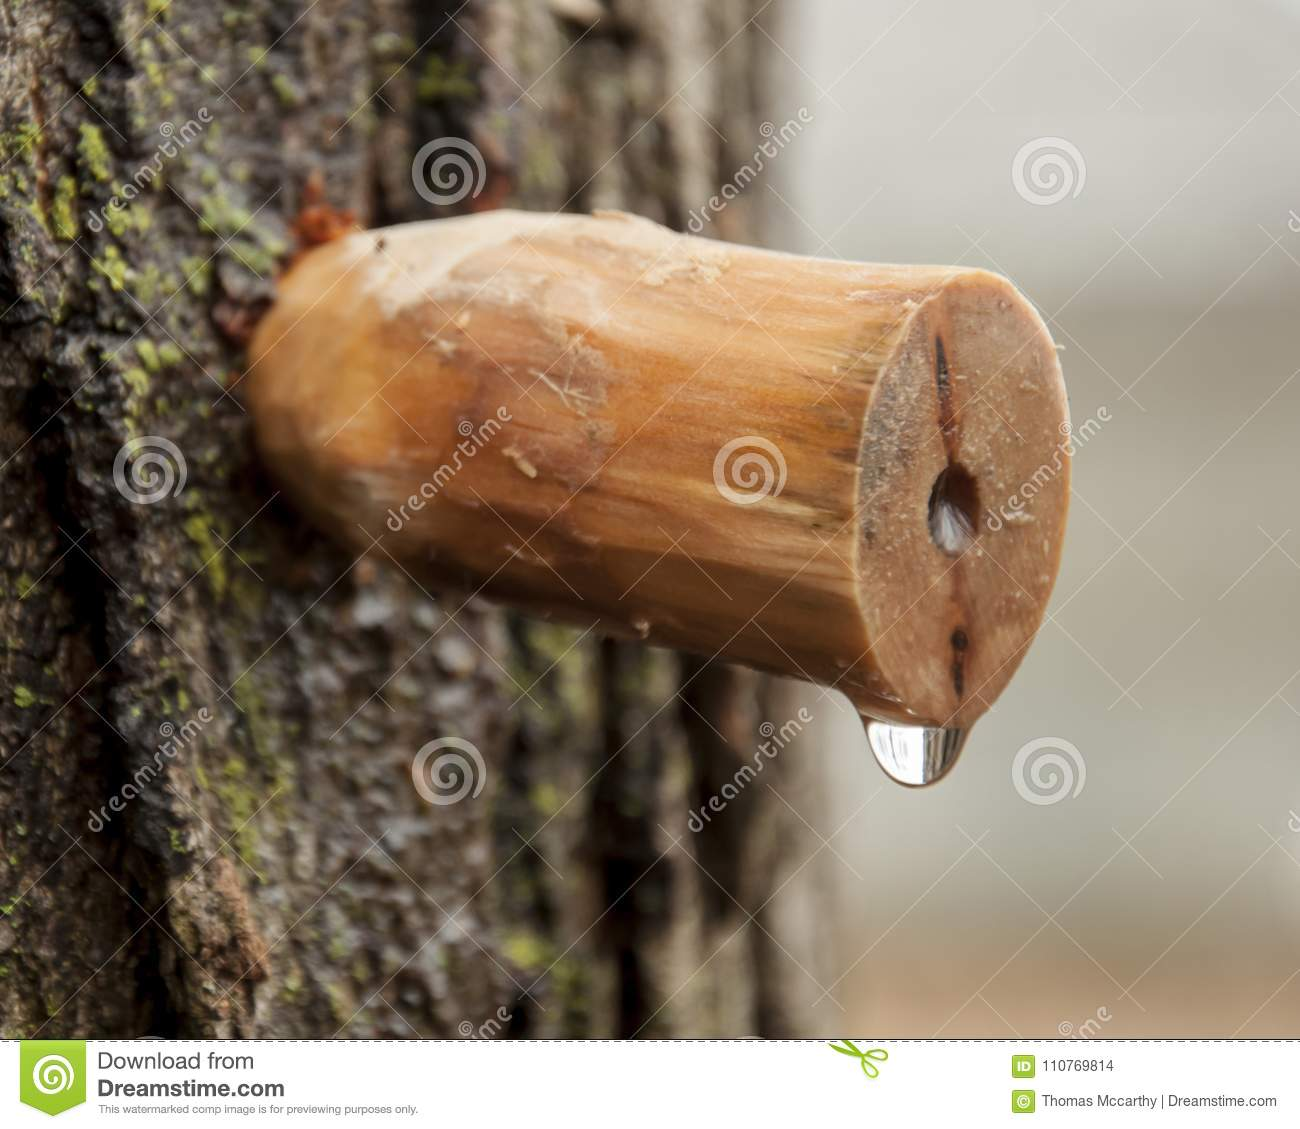 Homemade carved wooden spile to tap maple tree for sap to make maple syrup